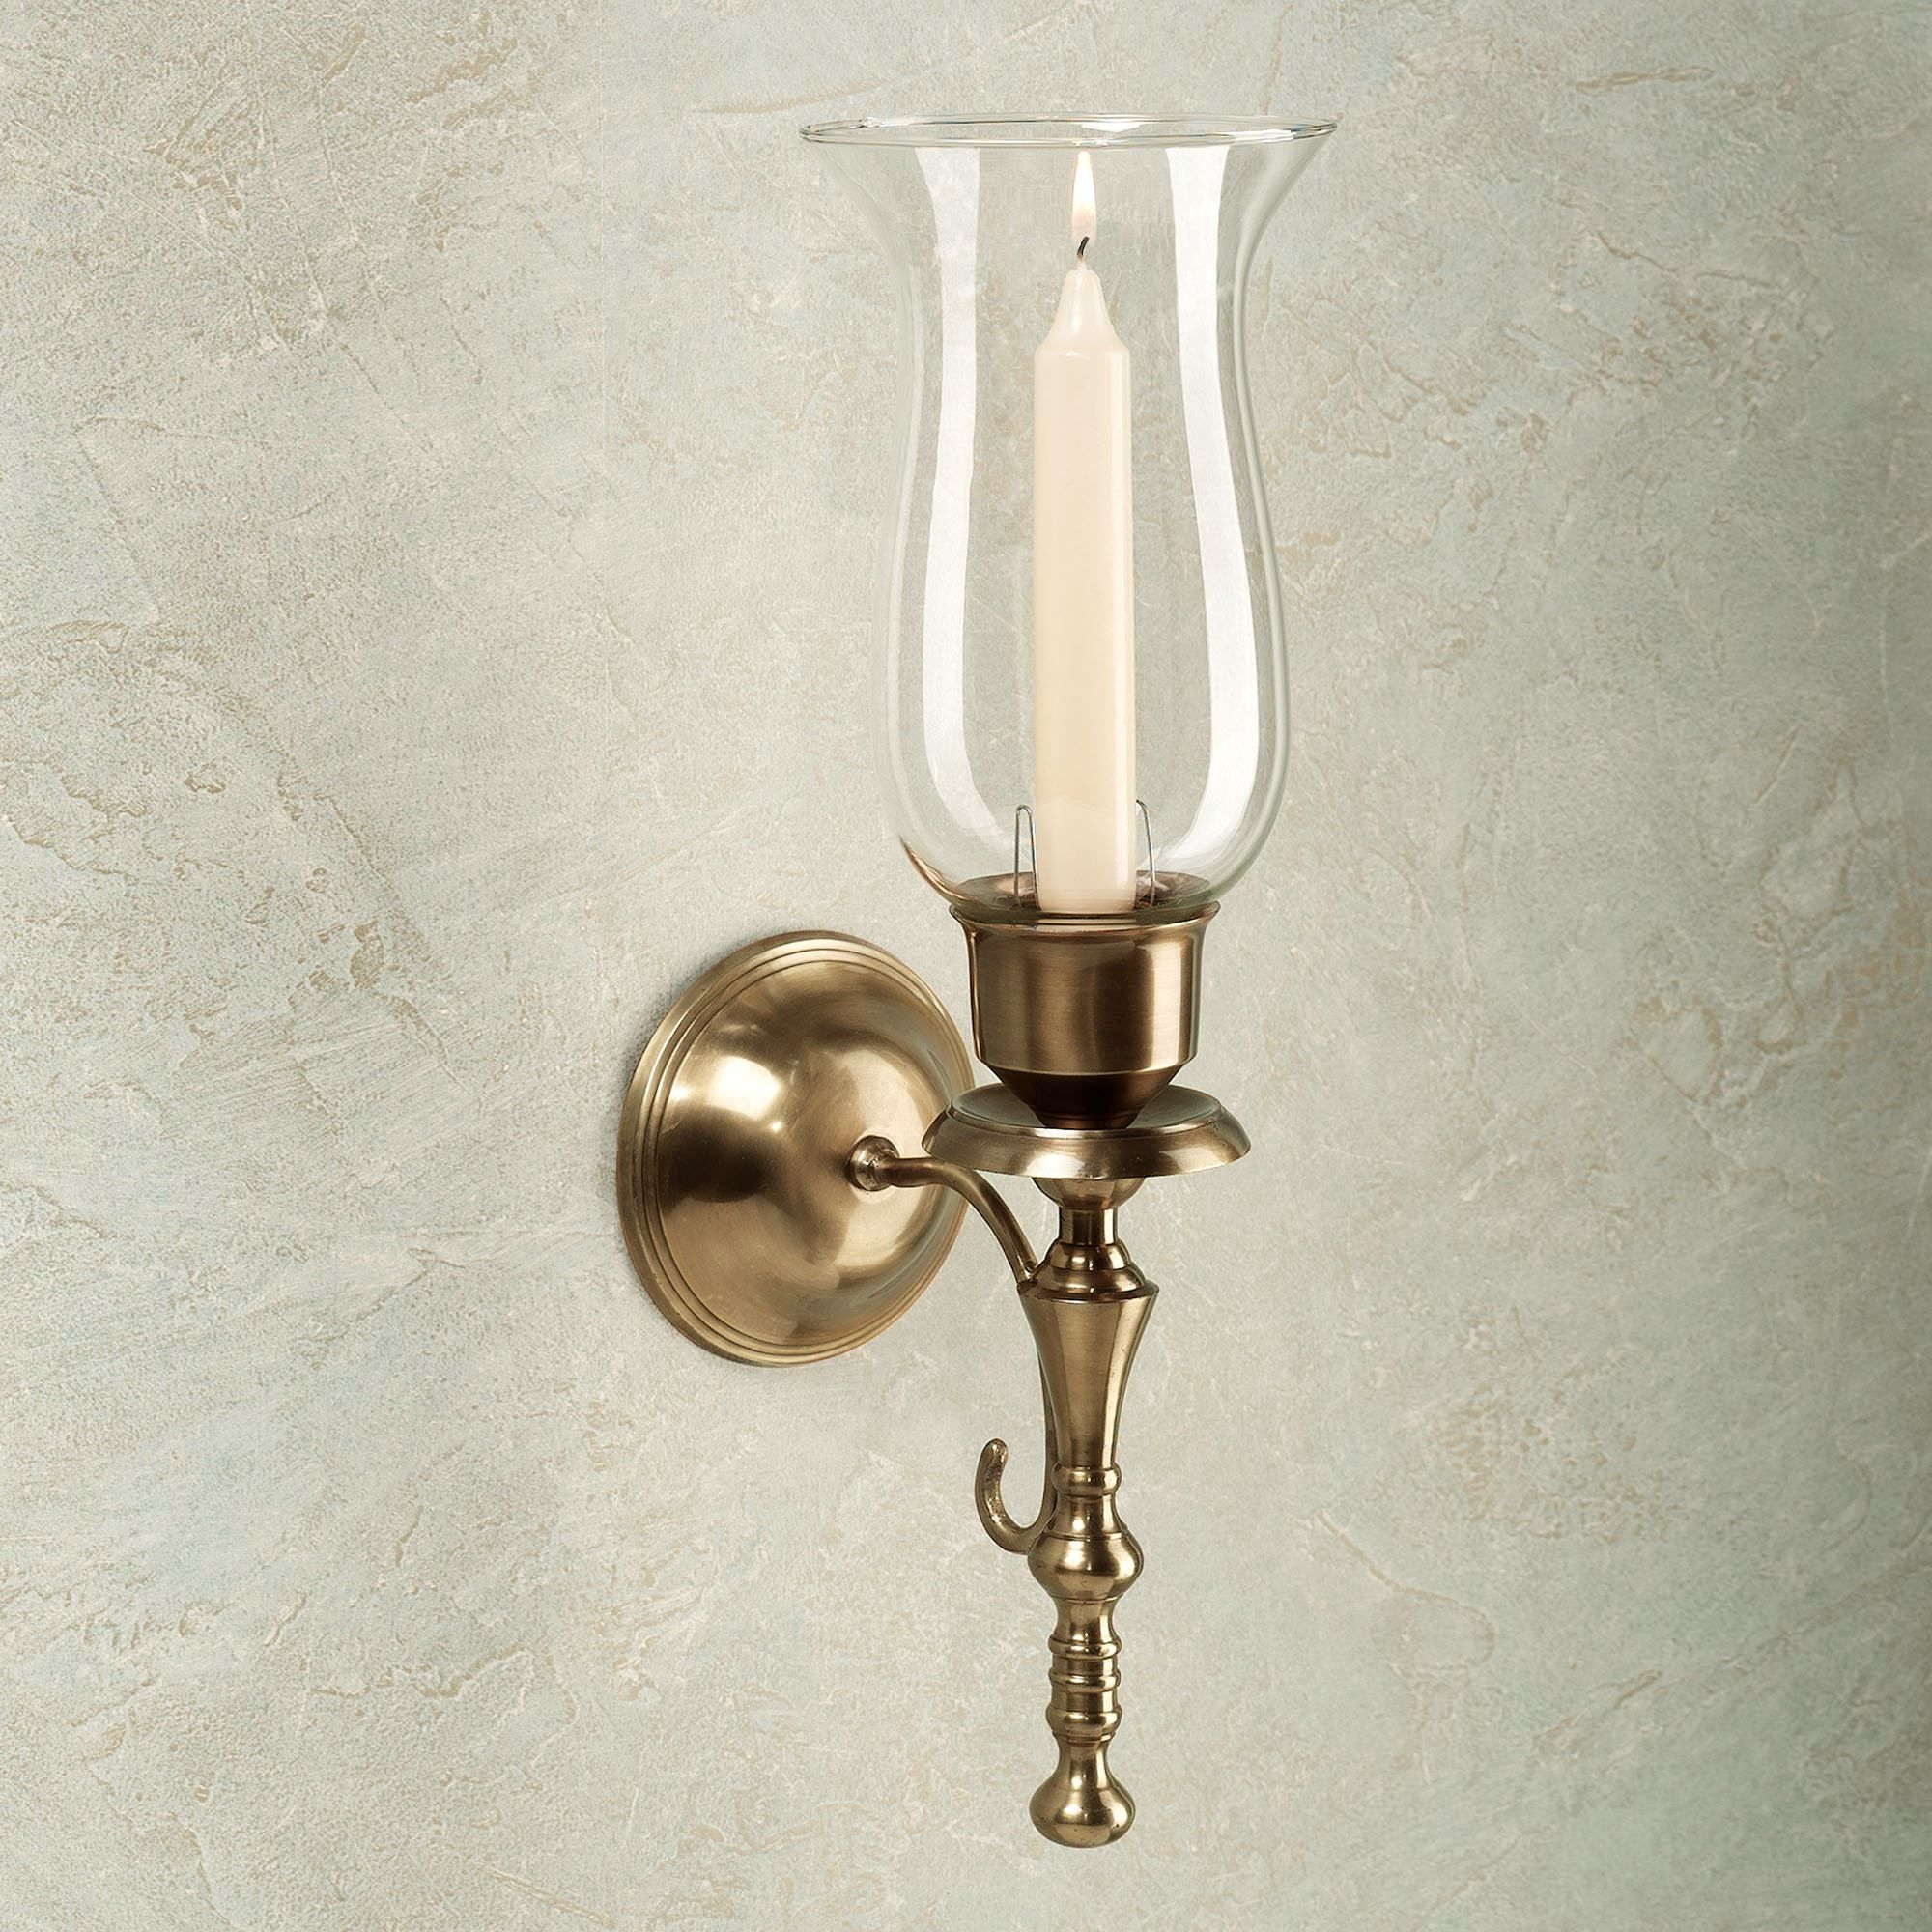 Manor Brass Wall Sconce Pair Wall Sconces Bedroom Brass Wall Sconce Wall Candles